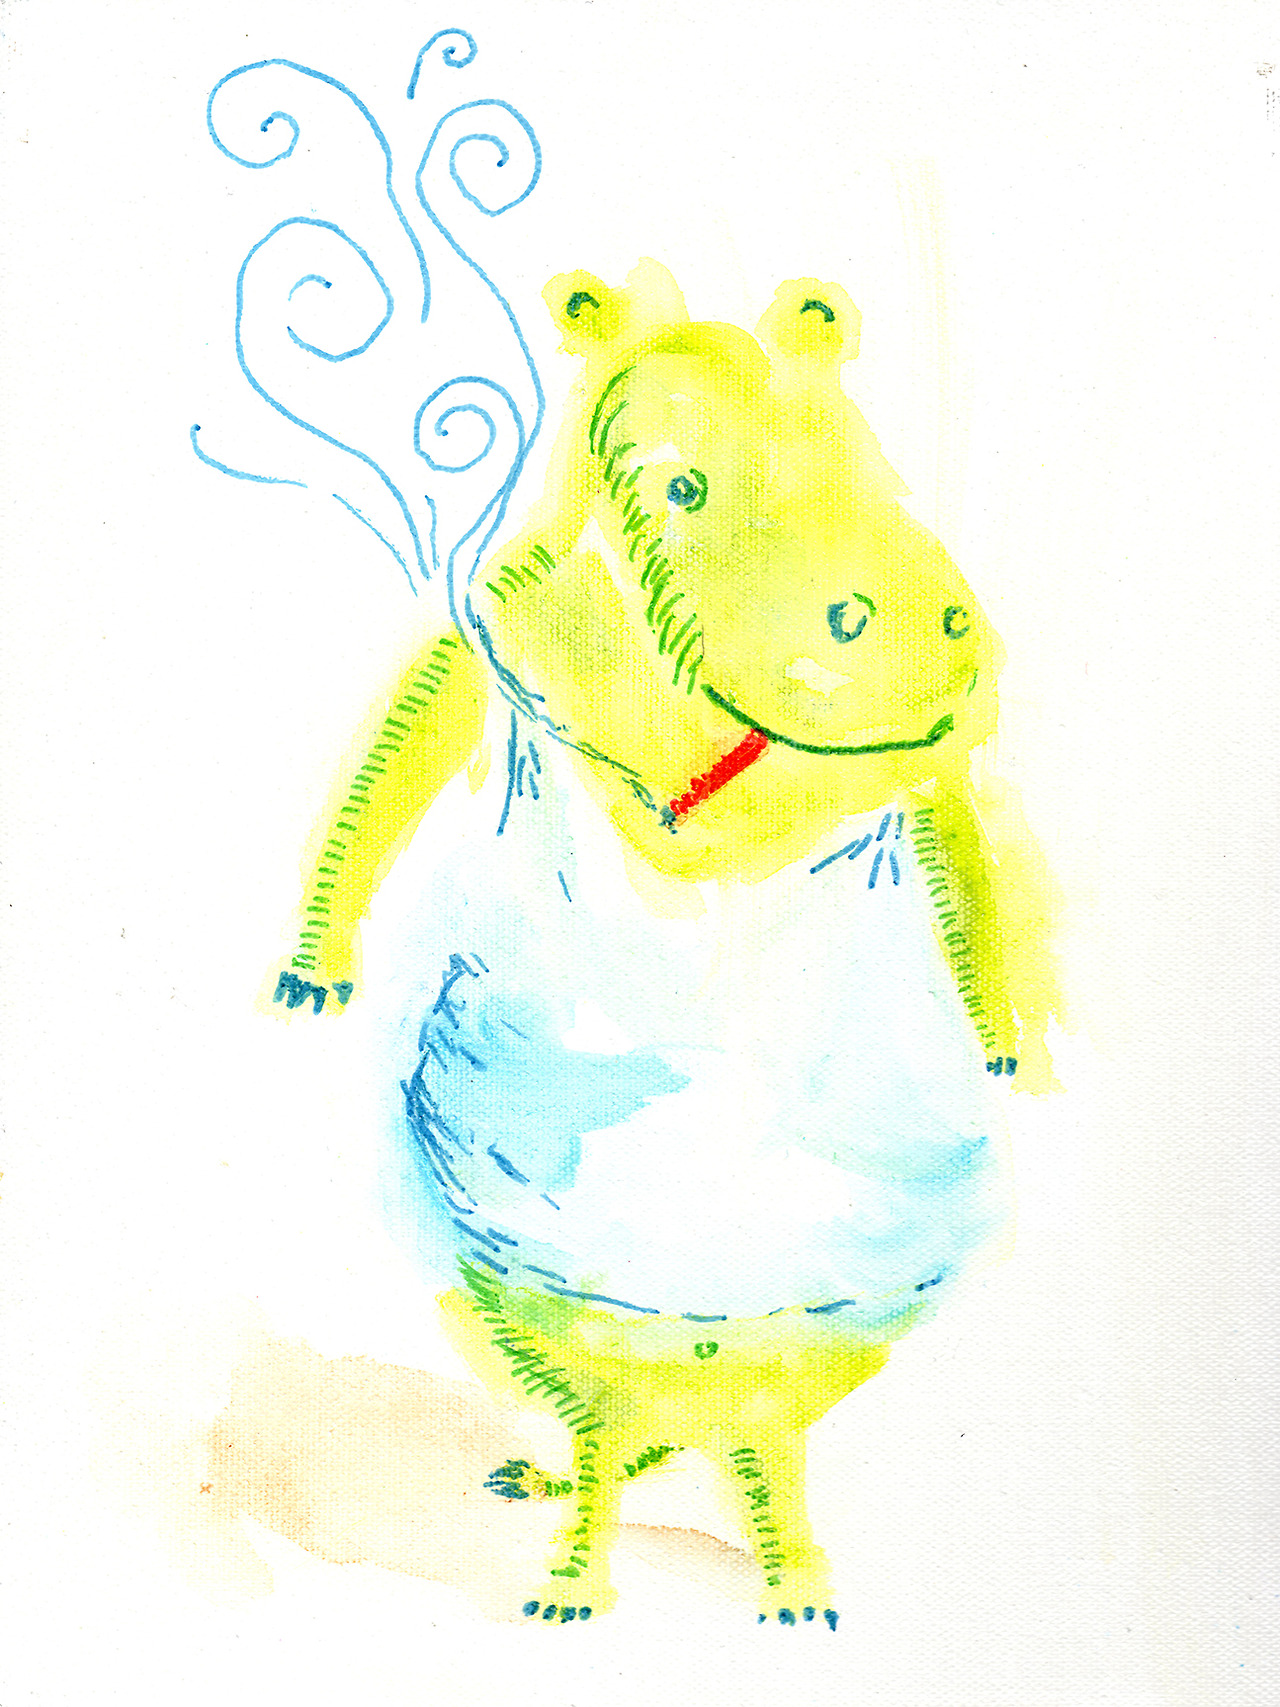 7/7/13 -  Perry the Nopantsopotamus.    Because, really, why would a hippopotamus wear pants?   Buy it here -  http://taylorwinder.bigcartel.com    Prints of it here -  http://society6.com/taylorwinder